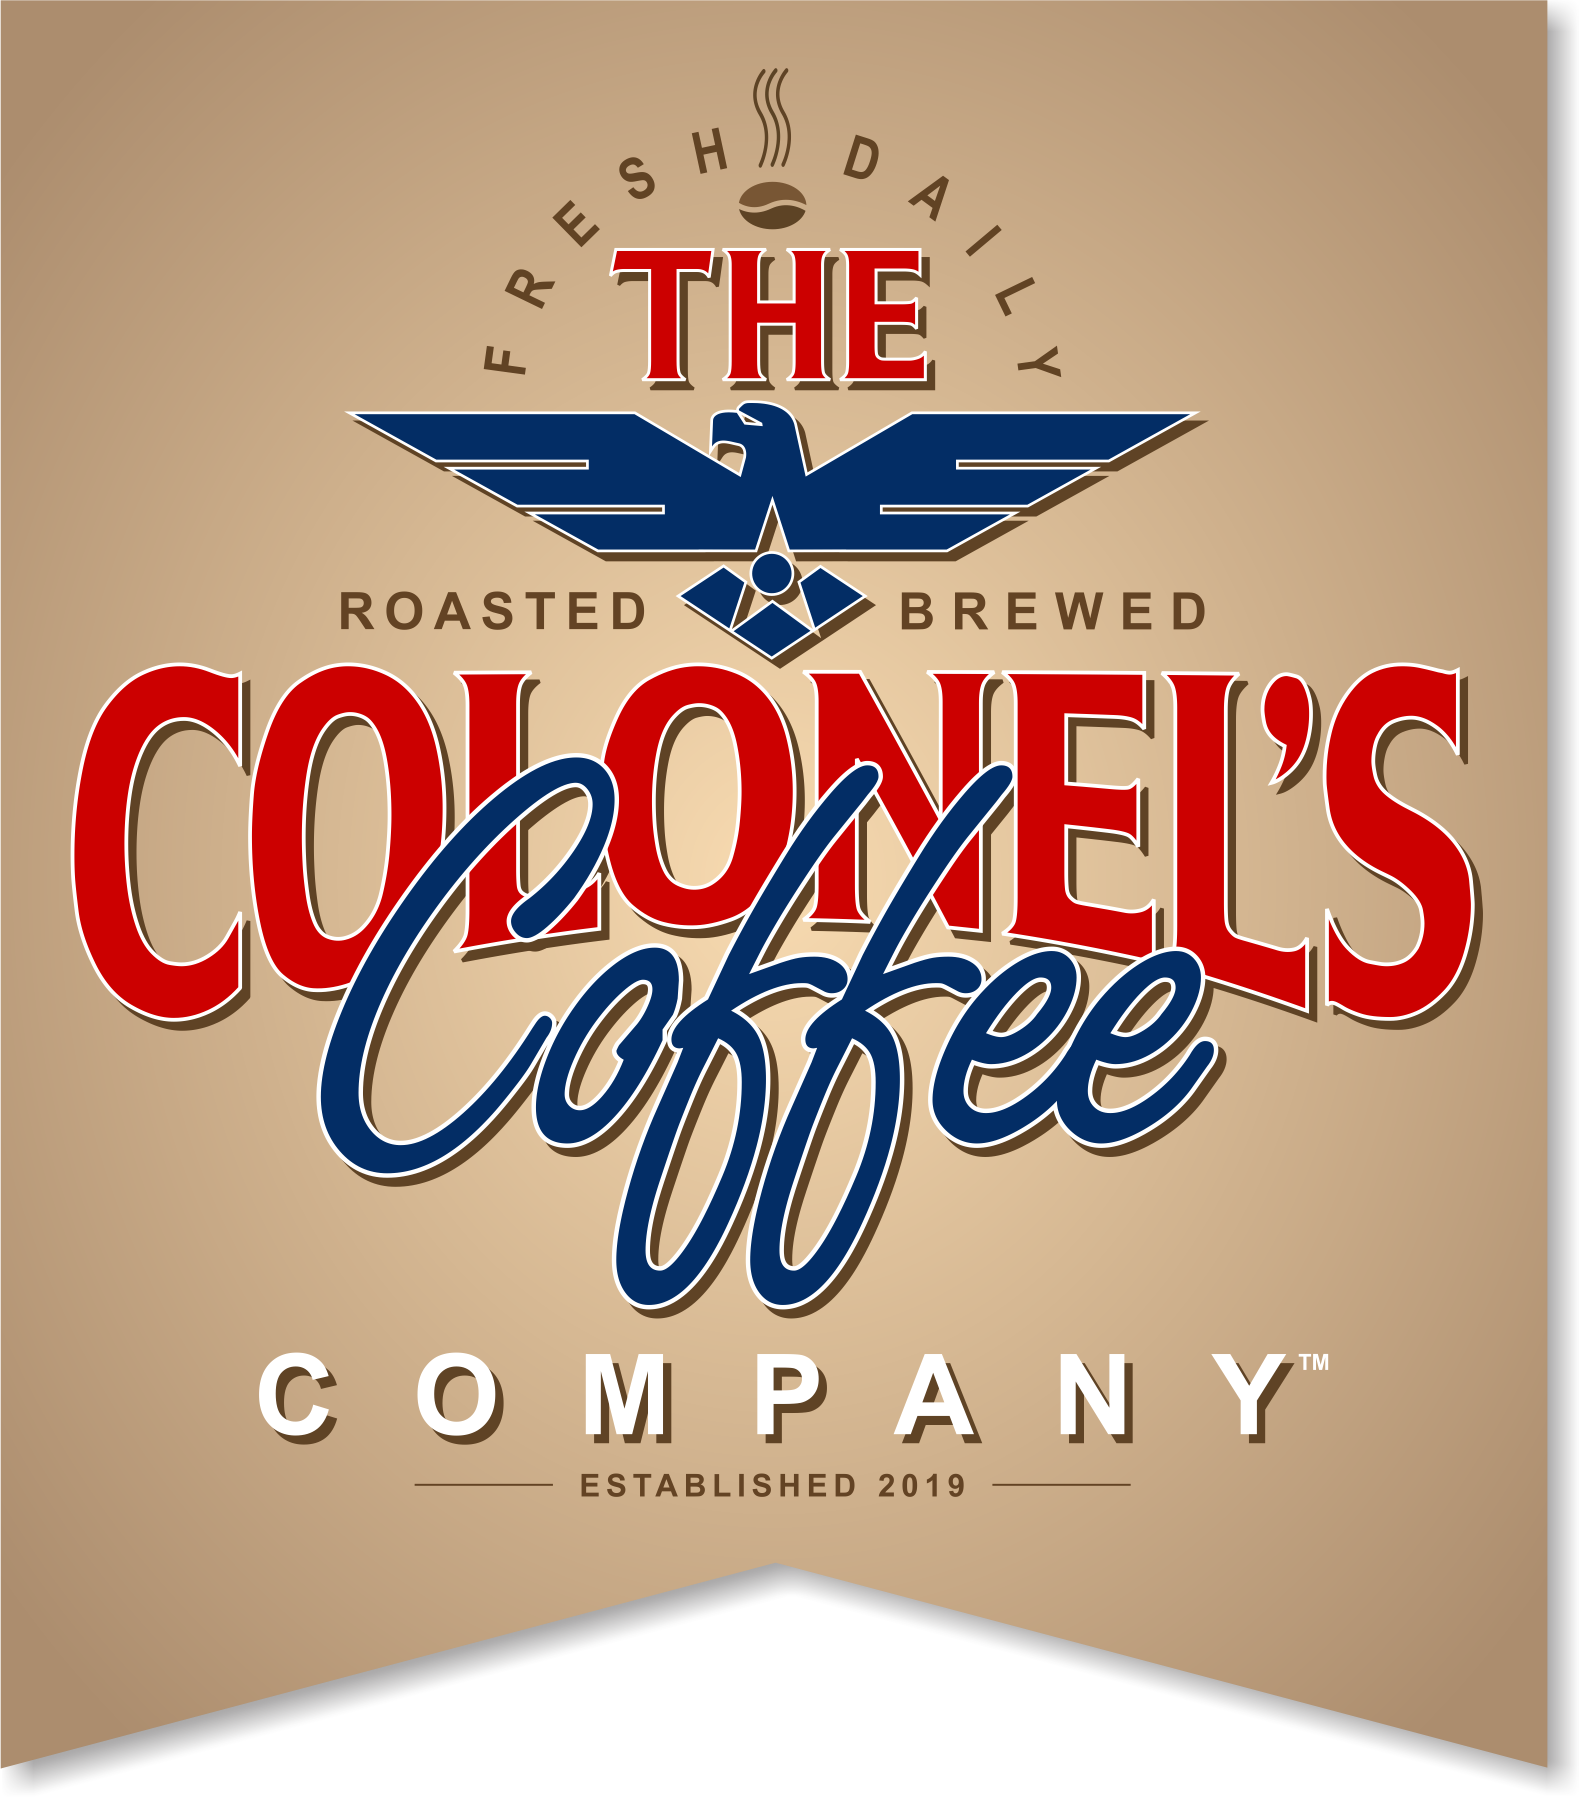 The Colonel's Coffee Company logo banner